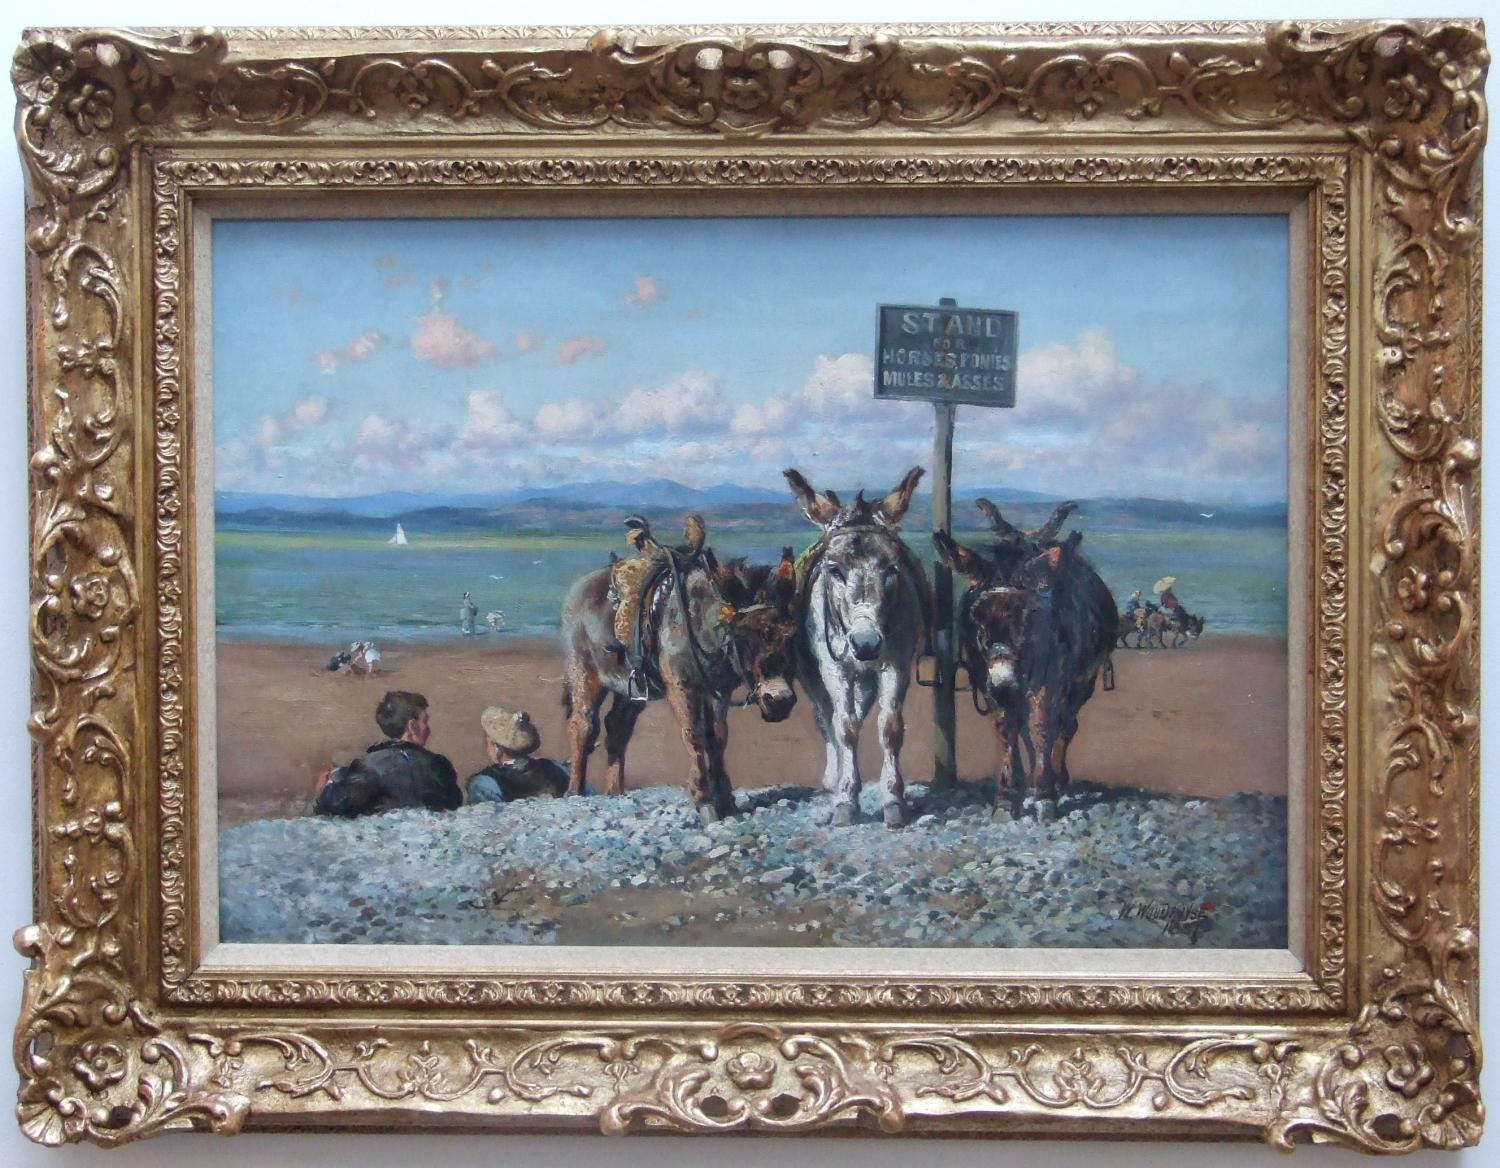 Oil on canvas of a beach donkey ride by William Woodhouse